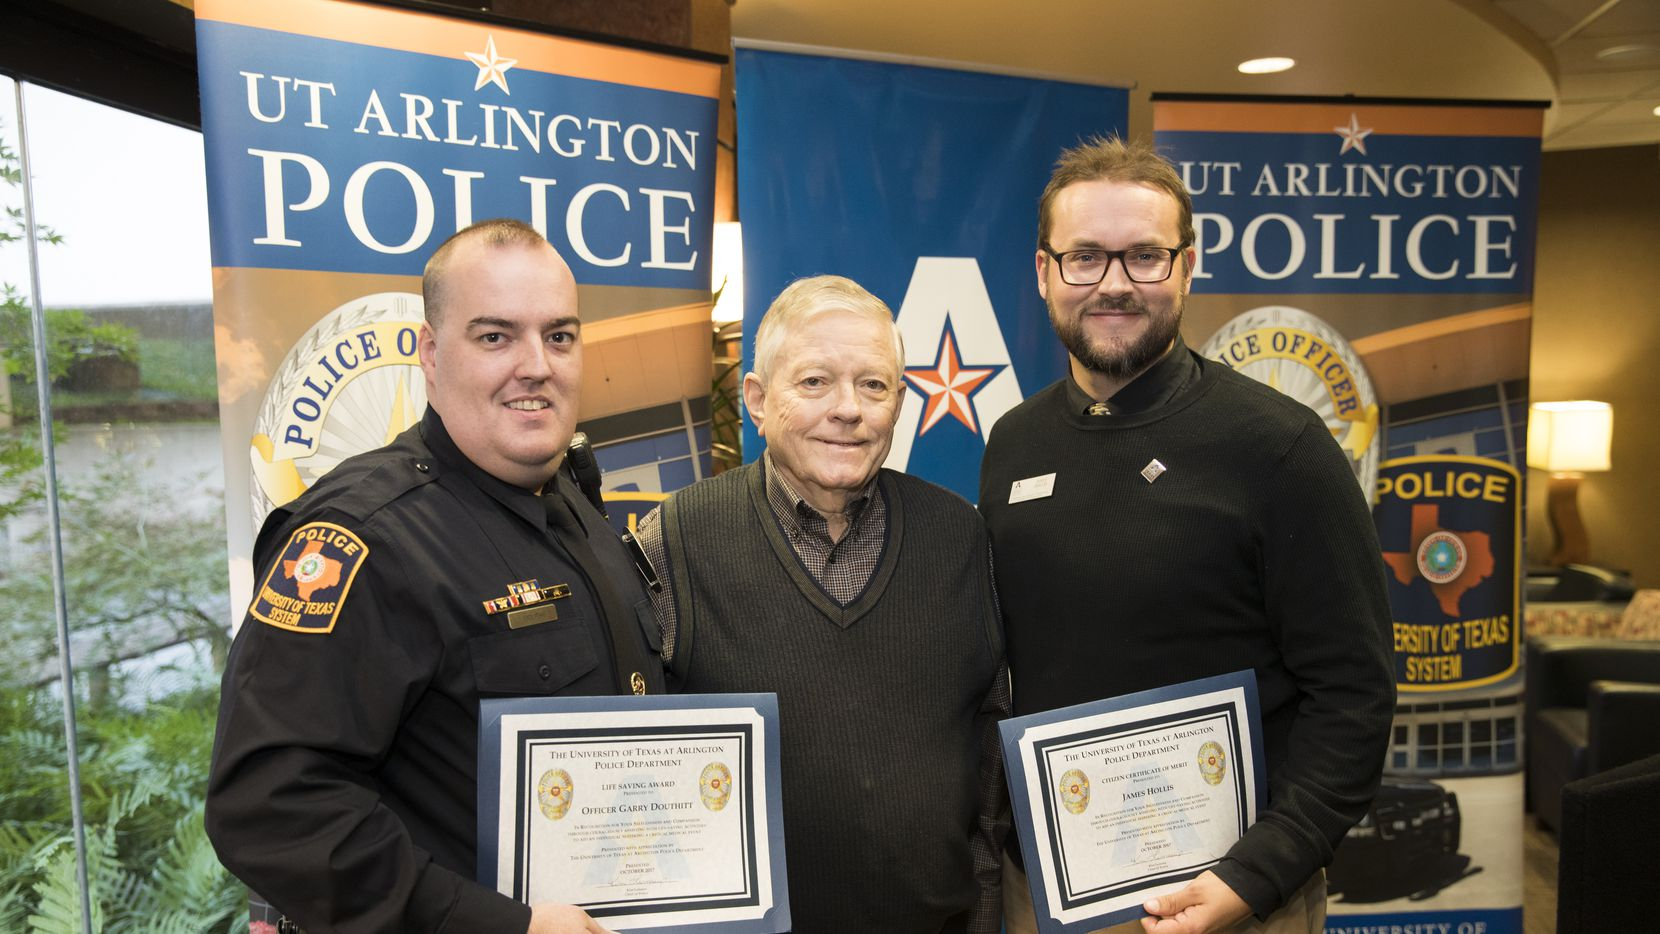 James Gamble (center) meets UTA police Officer Garry Douthitt (left) and James Hollis, the university's director of community partnerships, at a ceremony honoring the two for helping save Gamble's life during a campus function.